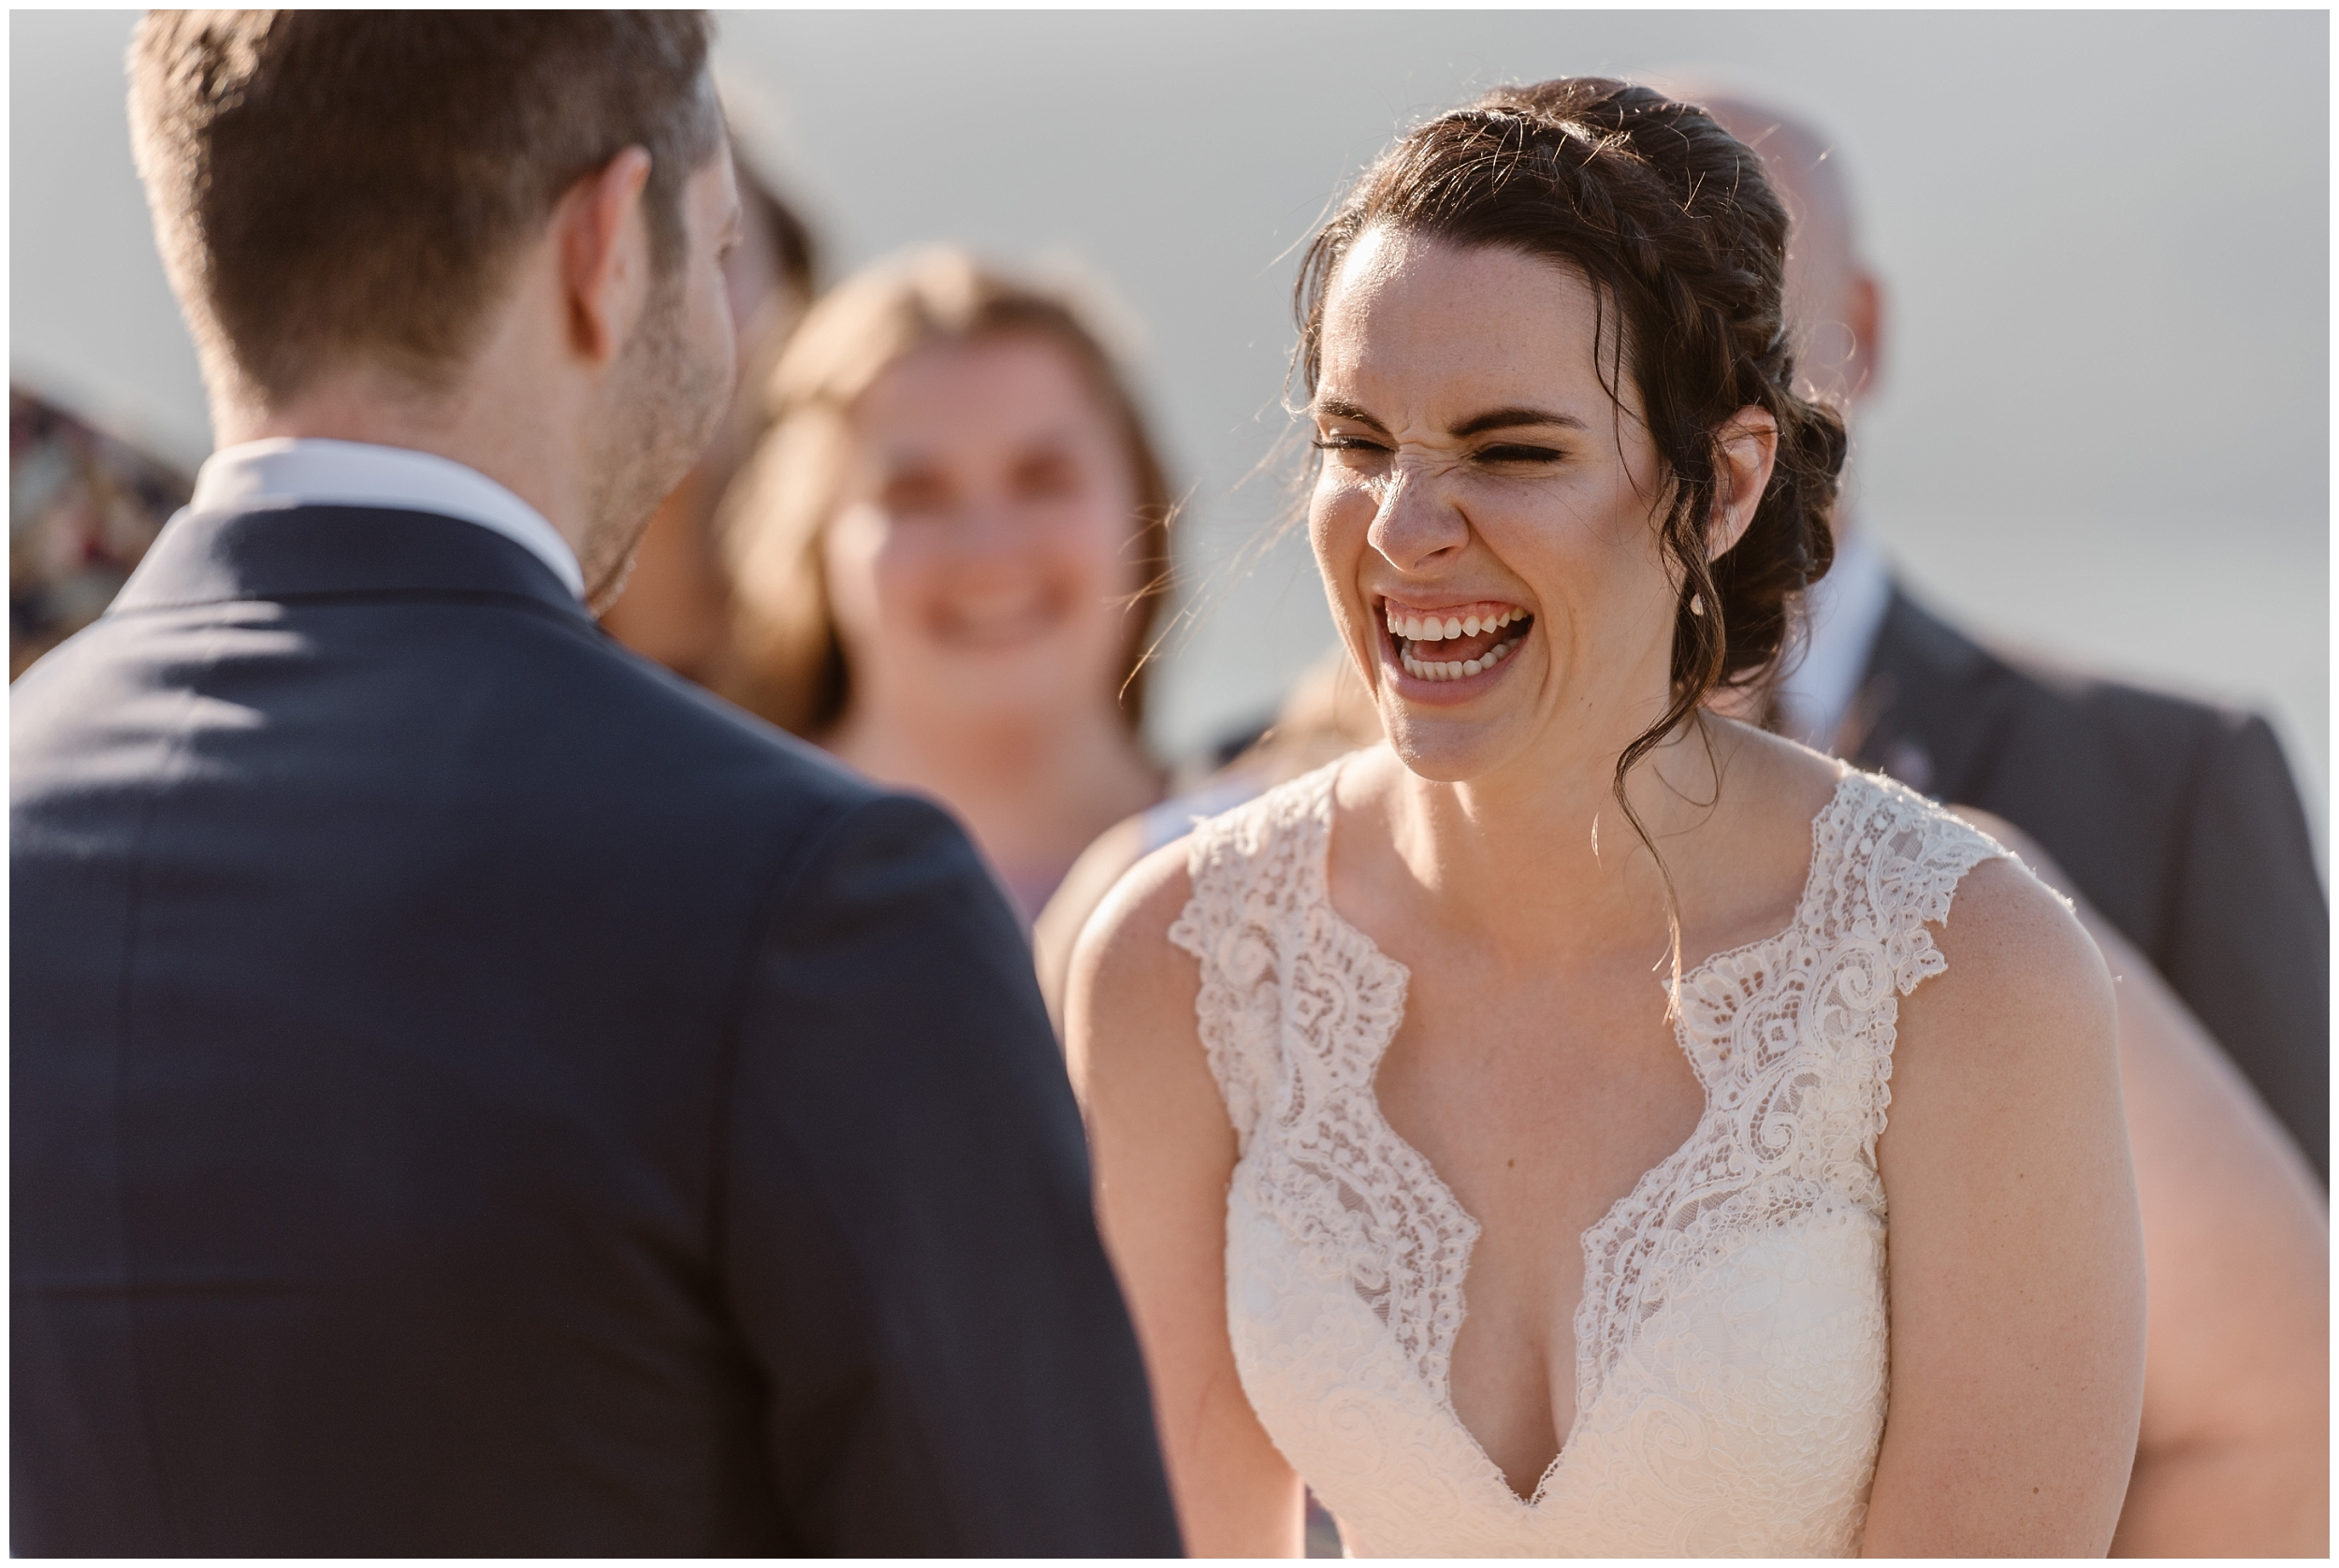 Lauryn leans in close to David to laugh during their Columbia River Gorge wedding. Behind her, members of her family laugh along with her during their elopement ceremony.